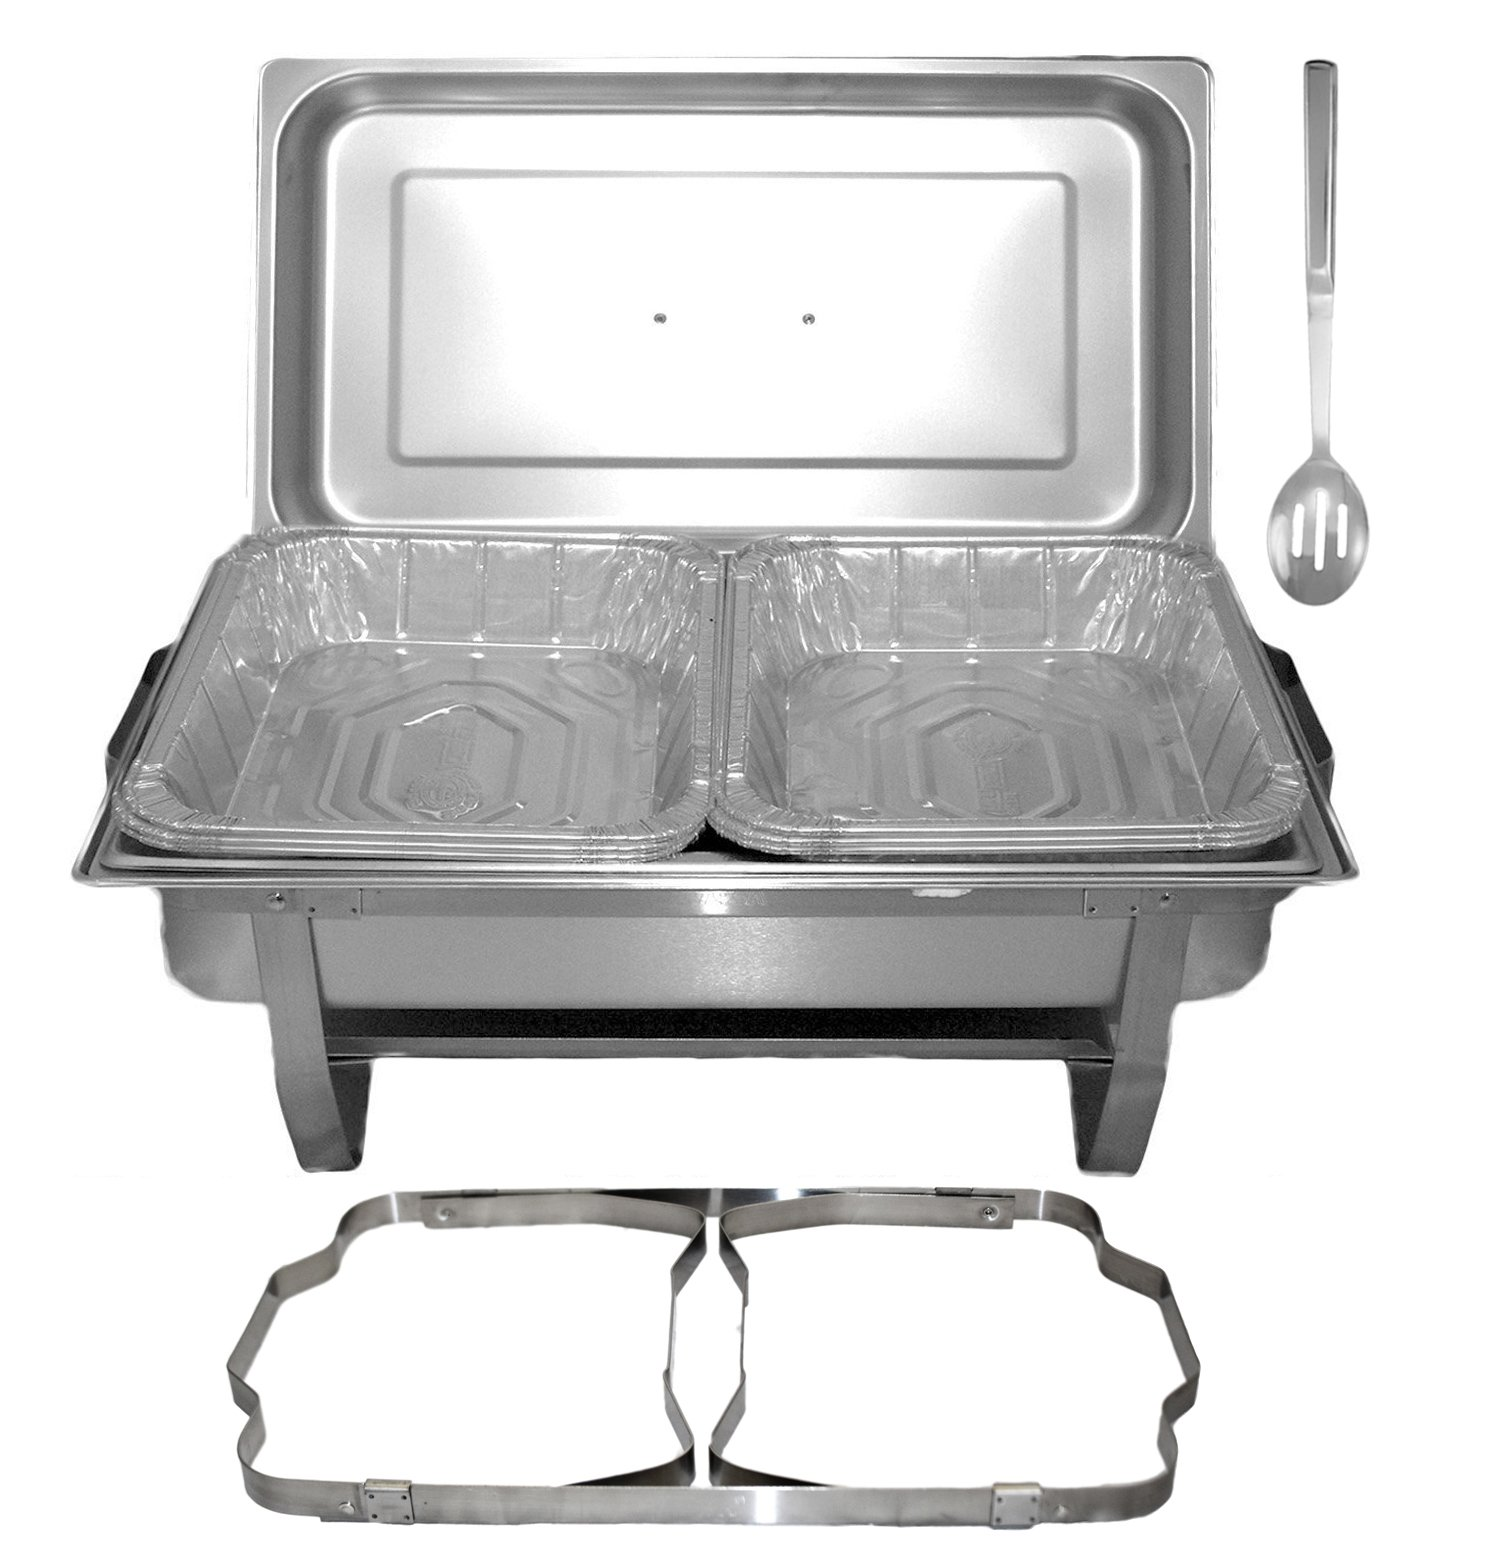 Tiger Chef 8 Quart Full Size Stainless Steel Chafer with Folding Frame and Cool-Touch Plastic on top - includes 6 Disposable Half Size Pans and a Slotted Spoon